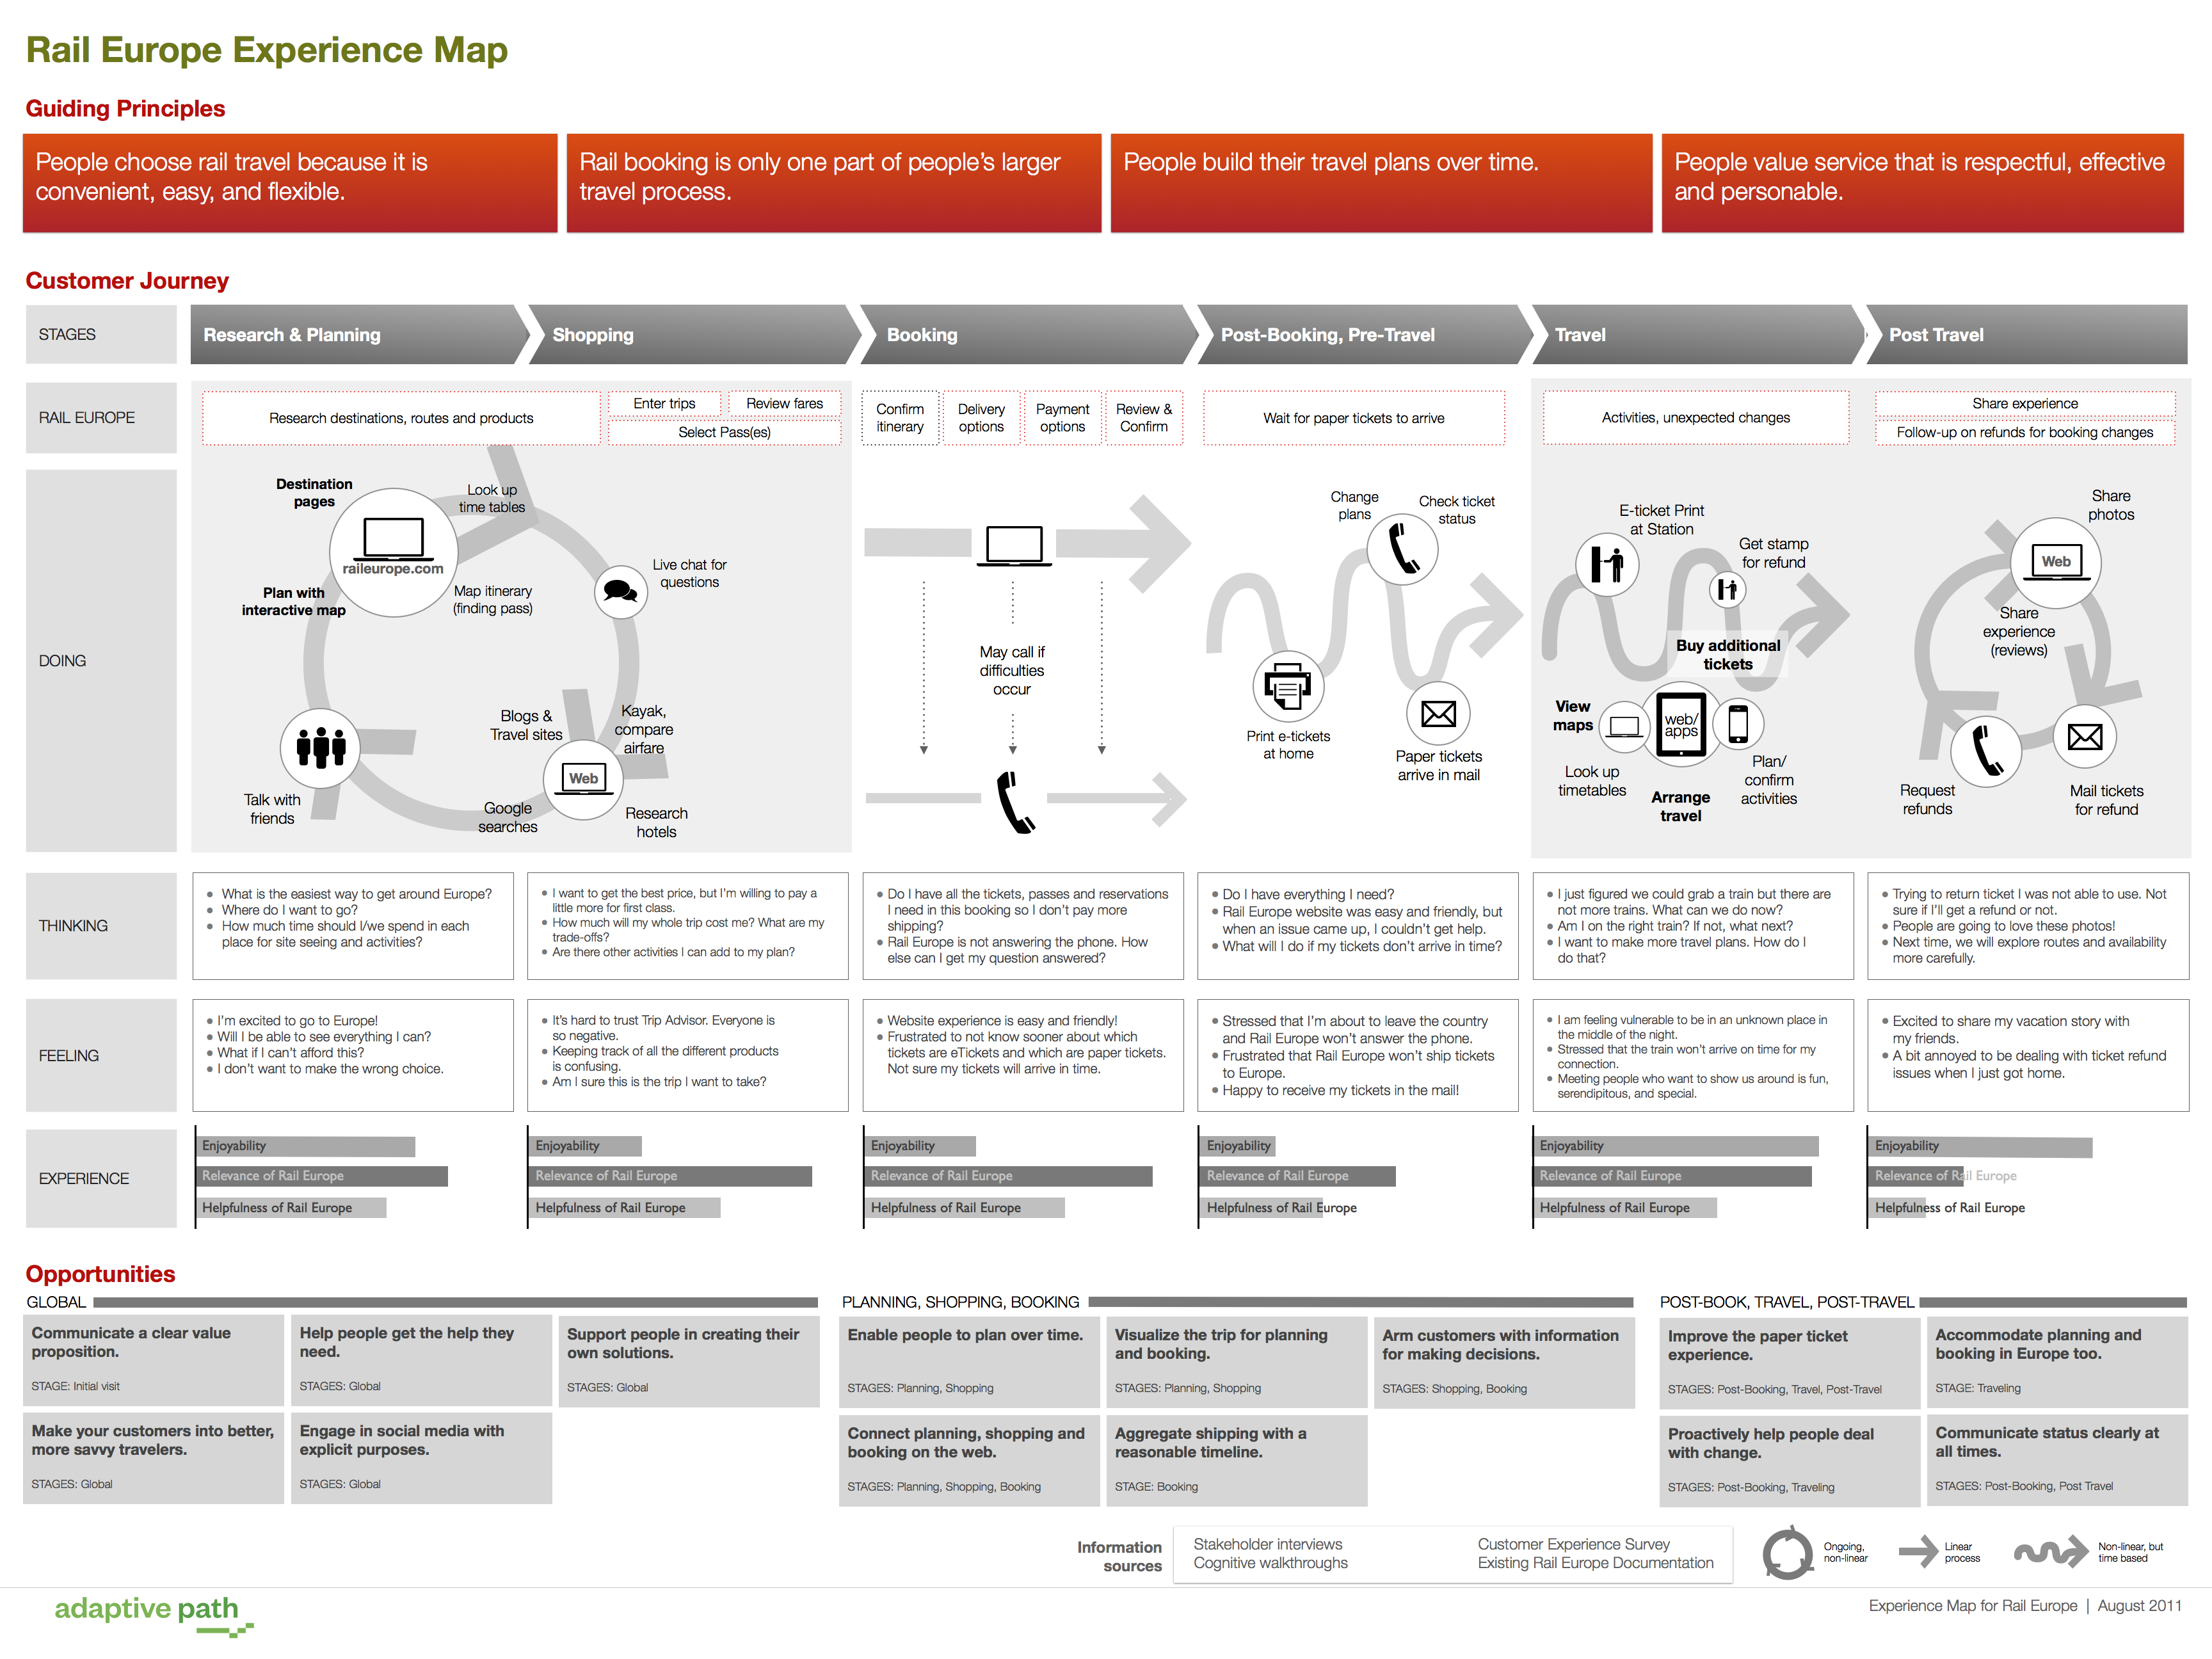 rail europe customer journey map Anatomy of an Experience Map — UX Articles by UIE